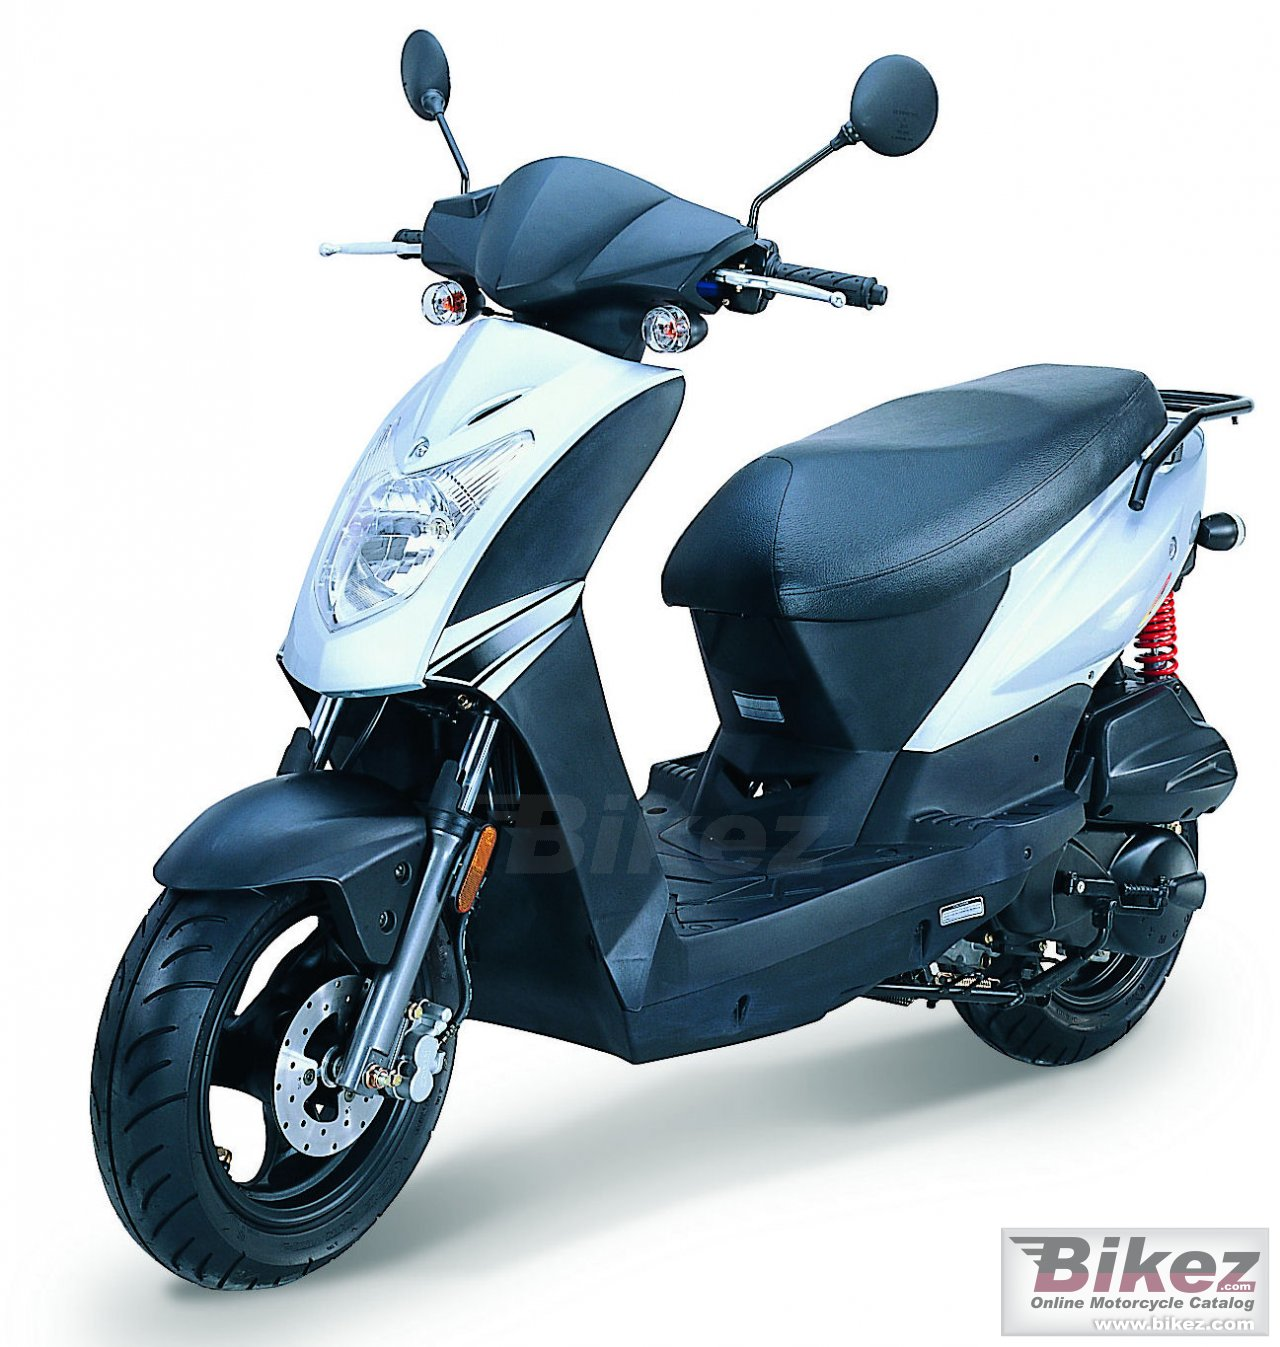 Big Kymco agility 50 picture and wallpaper from Bikez.com